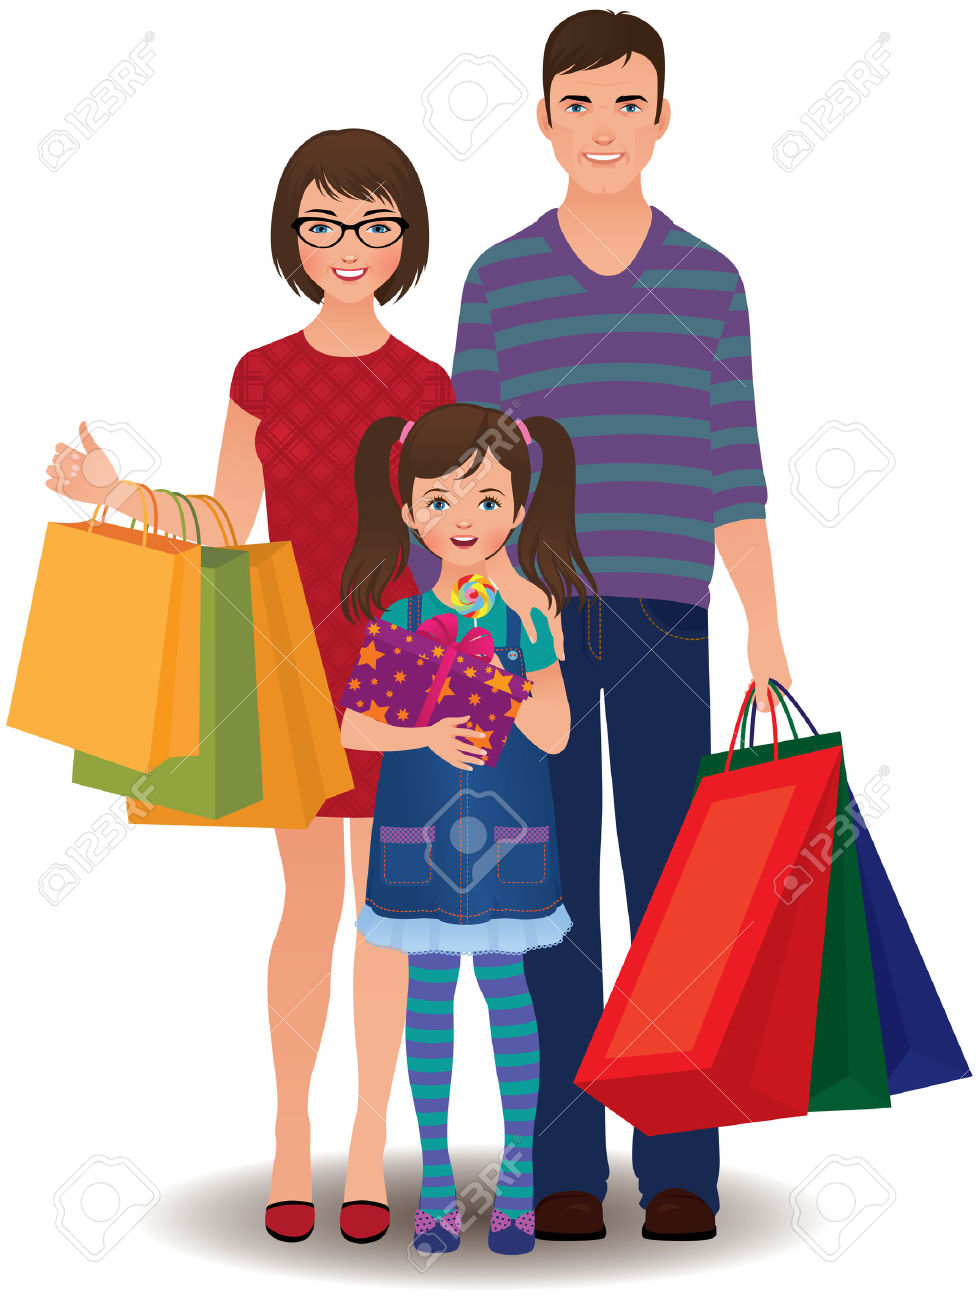 Family shopping clipart 10 » Clipart Station.